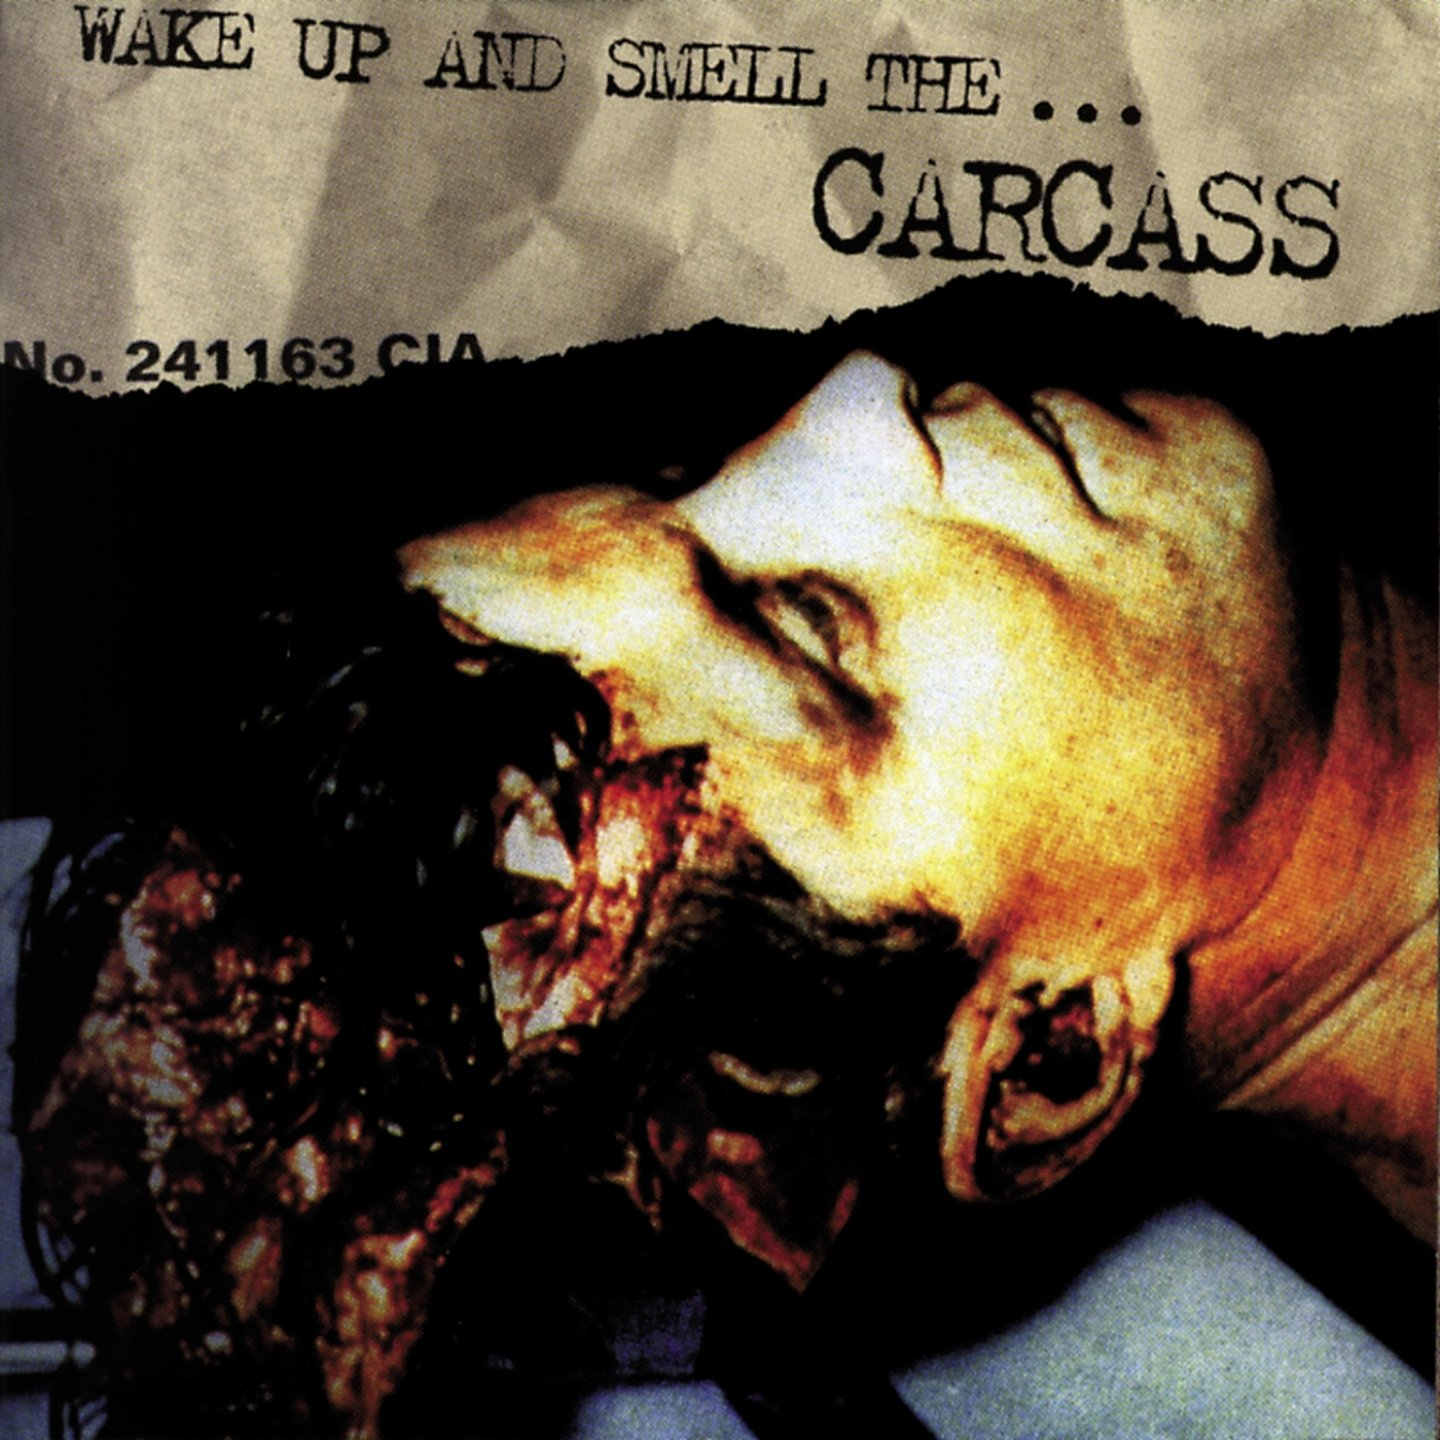 Carcass album Wake Up And Smell The Carcass